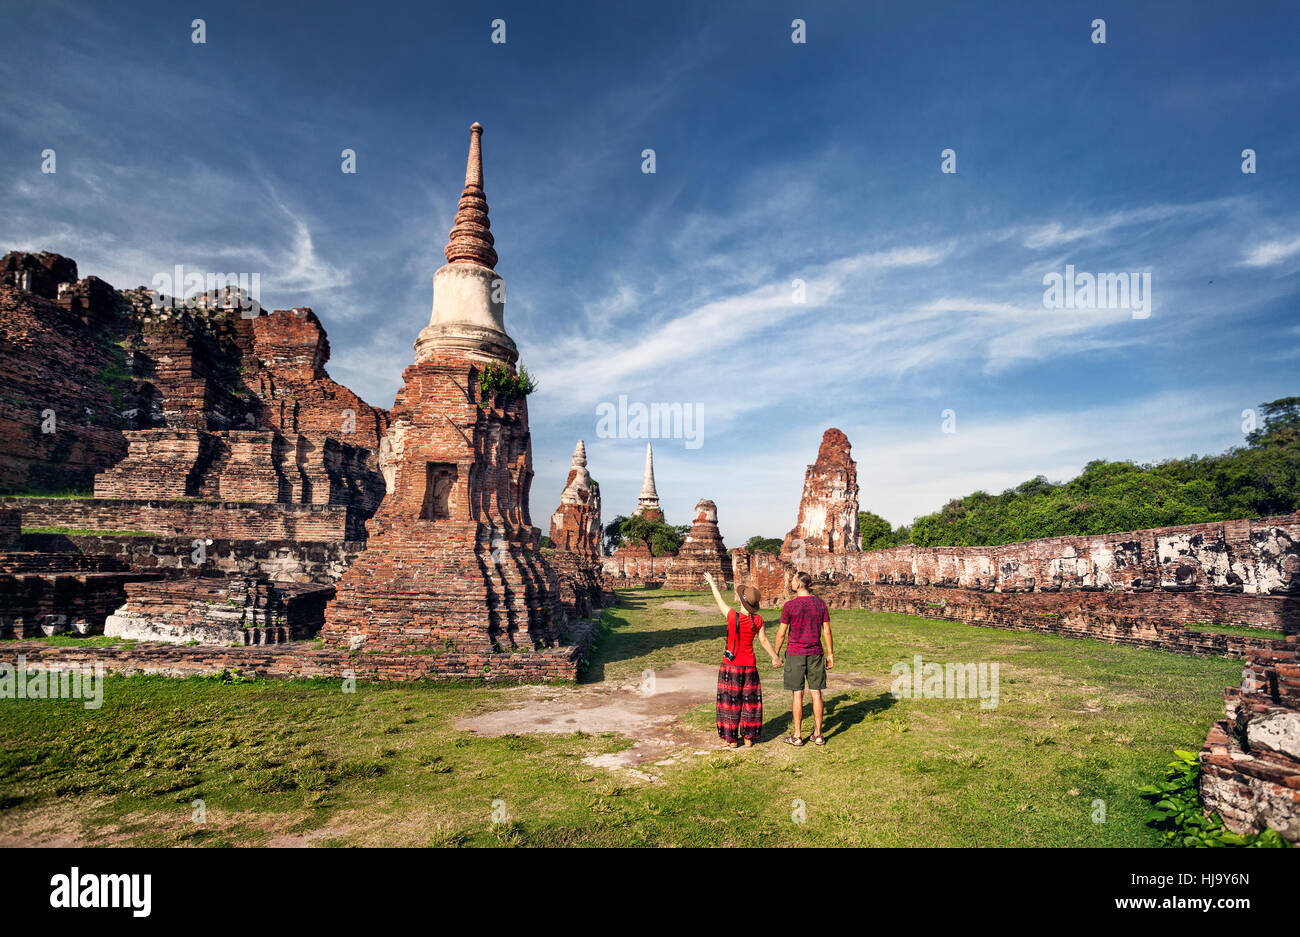 Young Couple in red clothes with photo camera looking at ancient ruined Wat Mahathat in Ayutthaya, Thailand - Stock Image